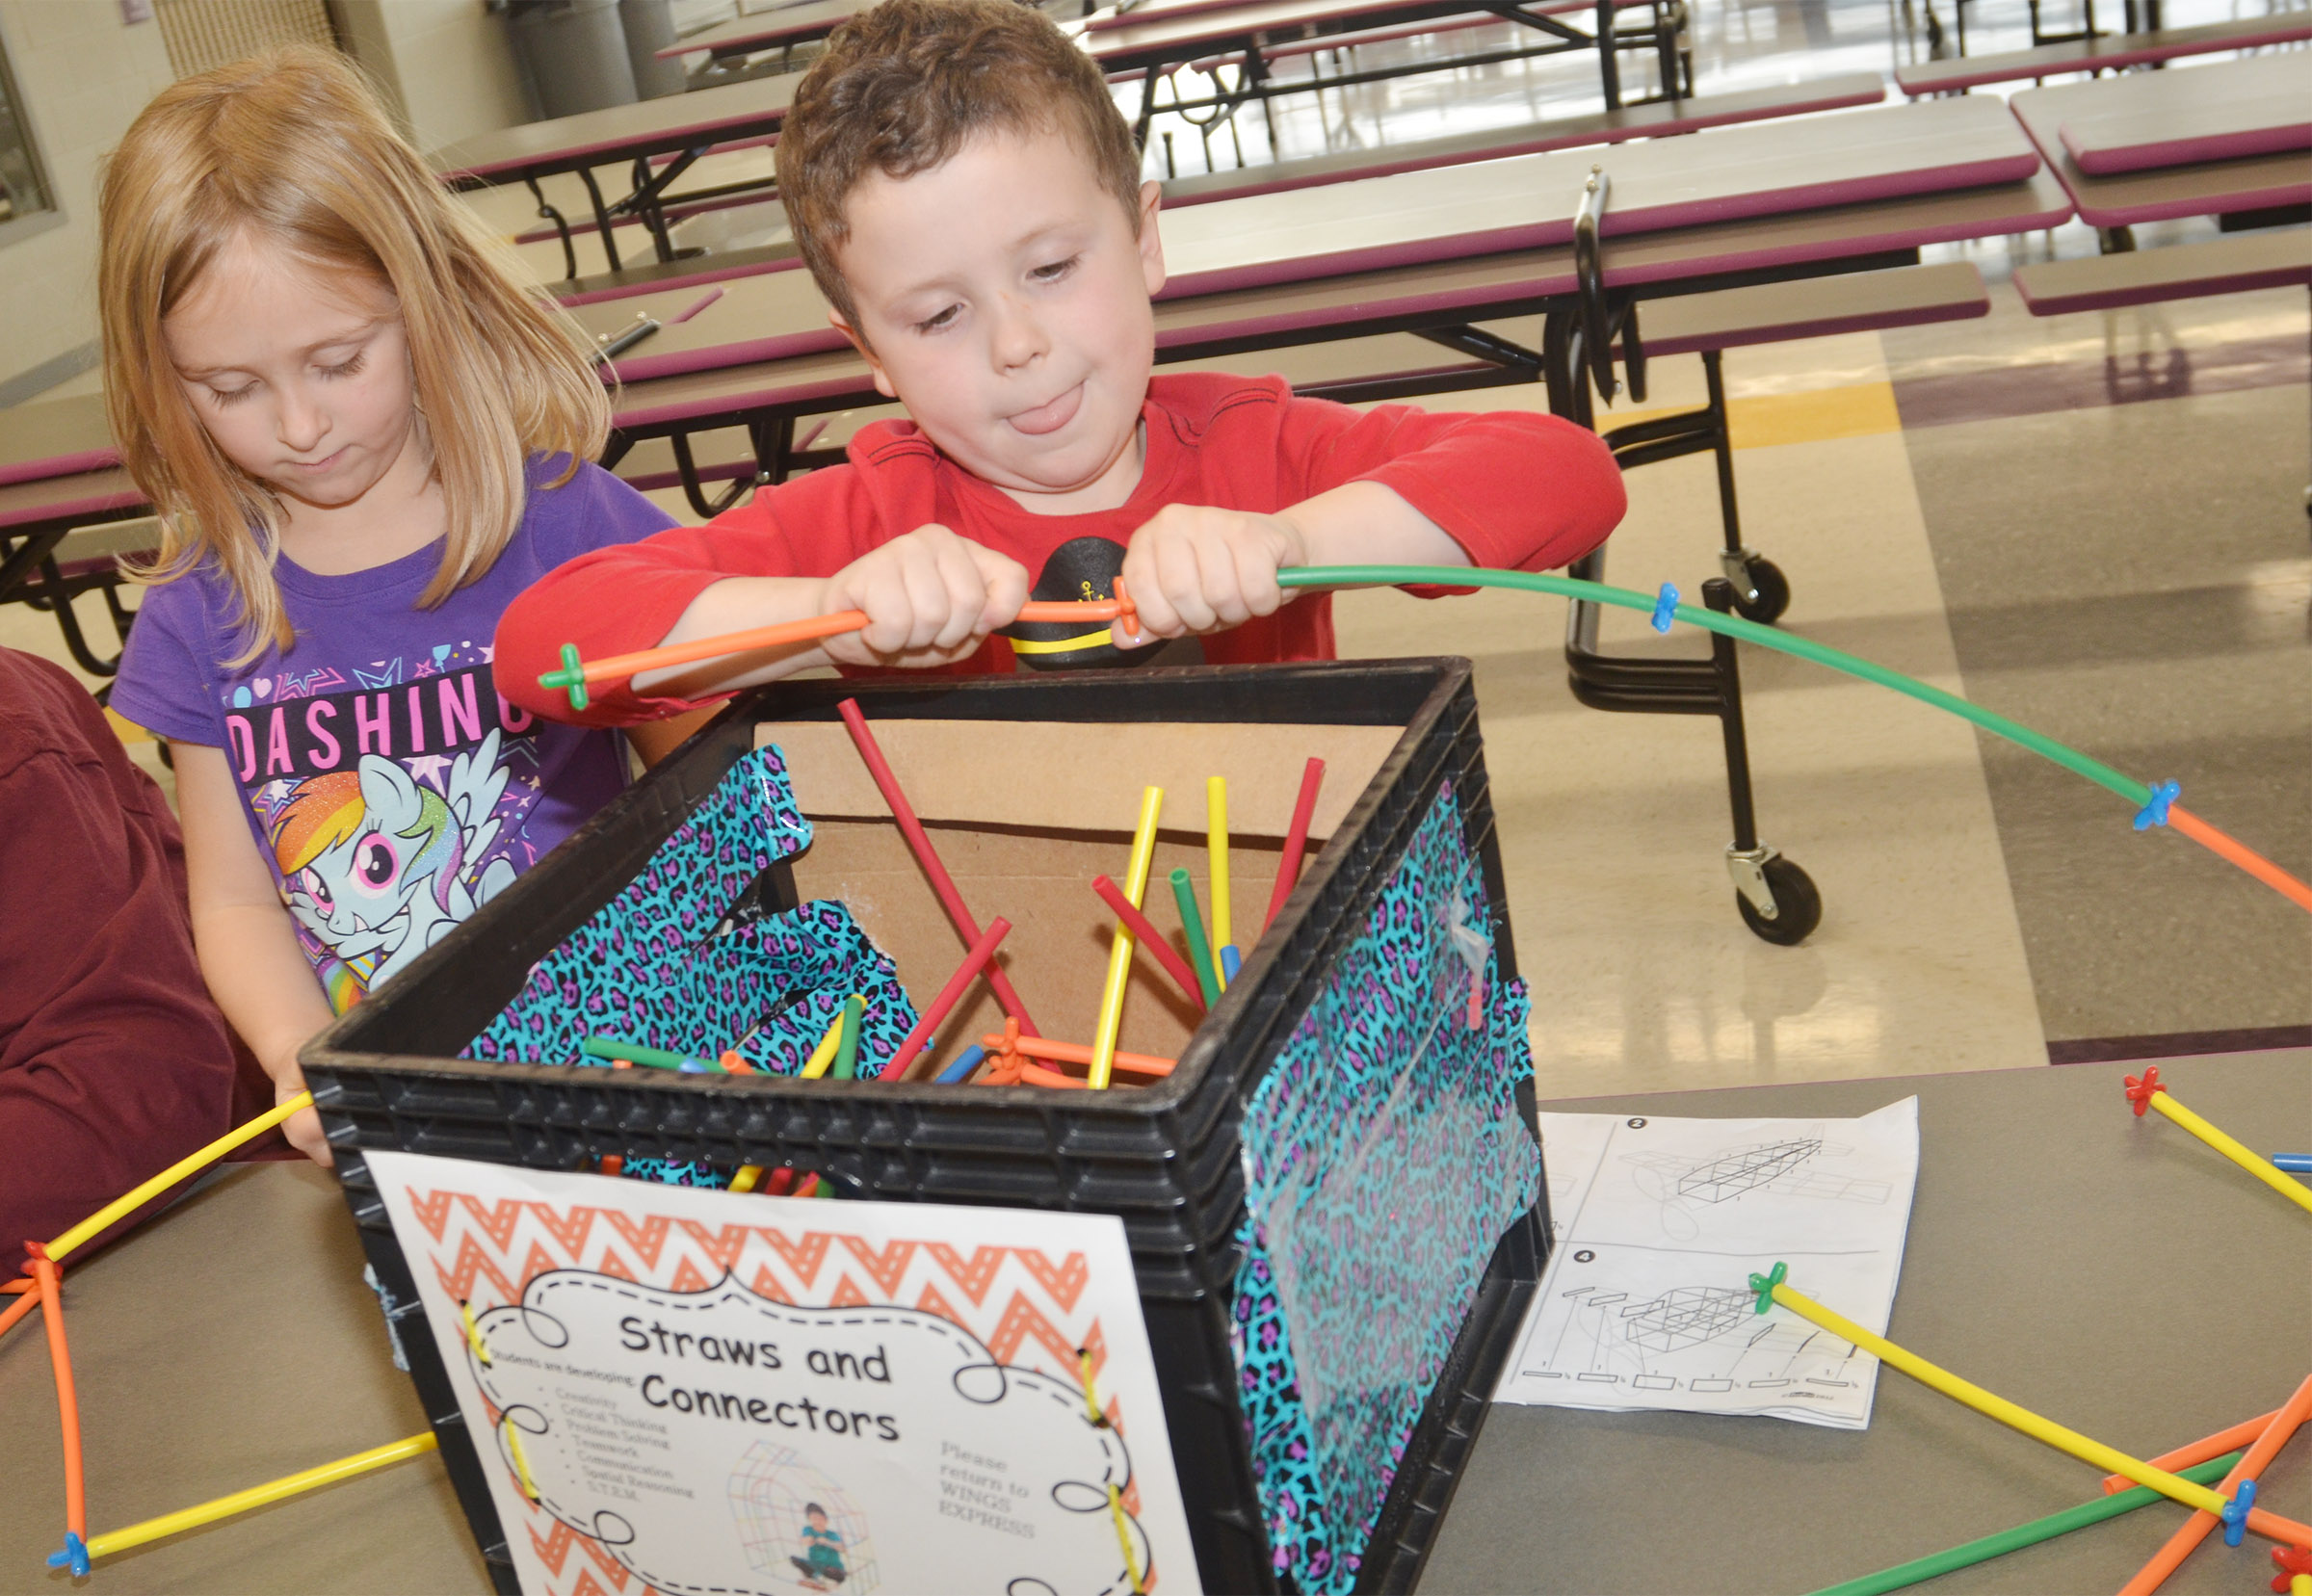 CES kindergarteners LeeAnna Garvin, at left, and Brayden Perkins build with connectors.